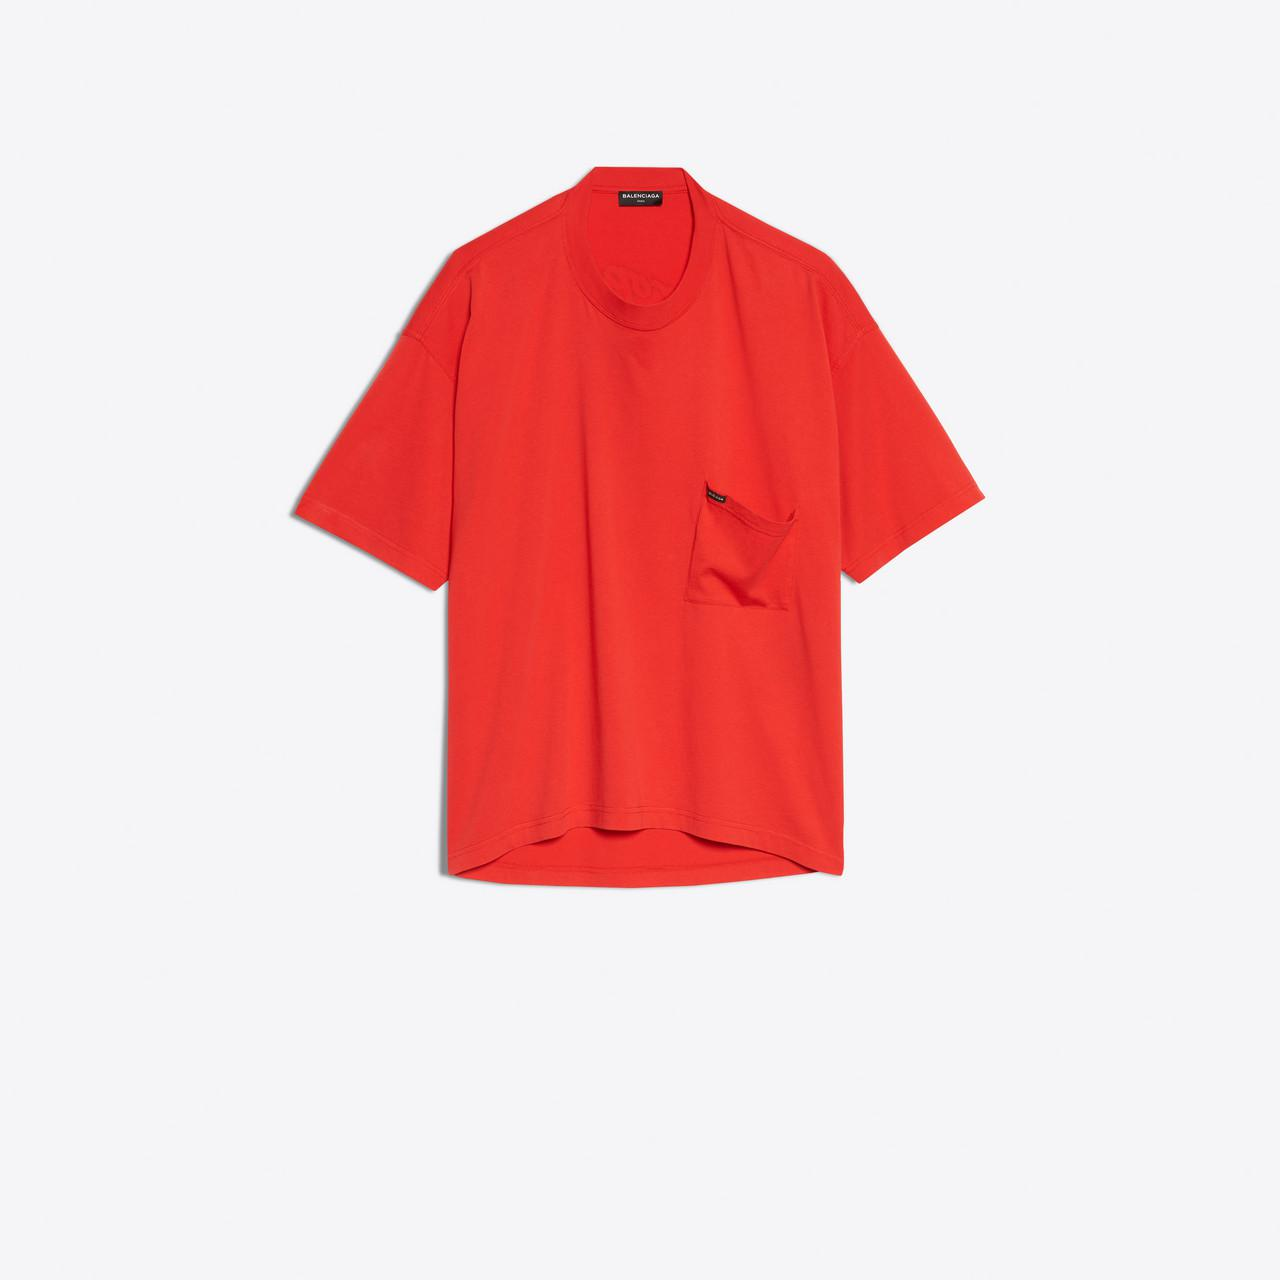 Lyst Balenciaga Oversize T Shirt Droopy In Red For Men